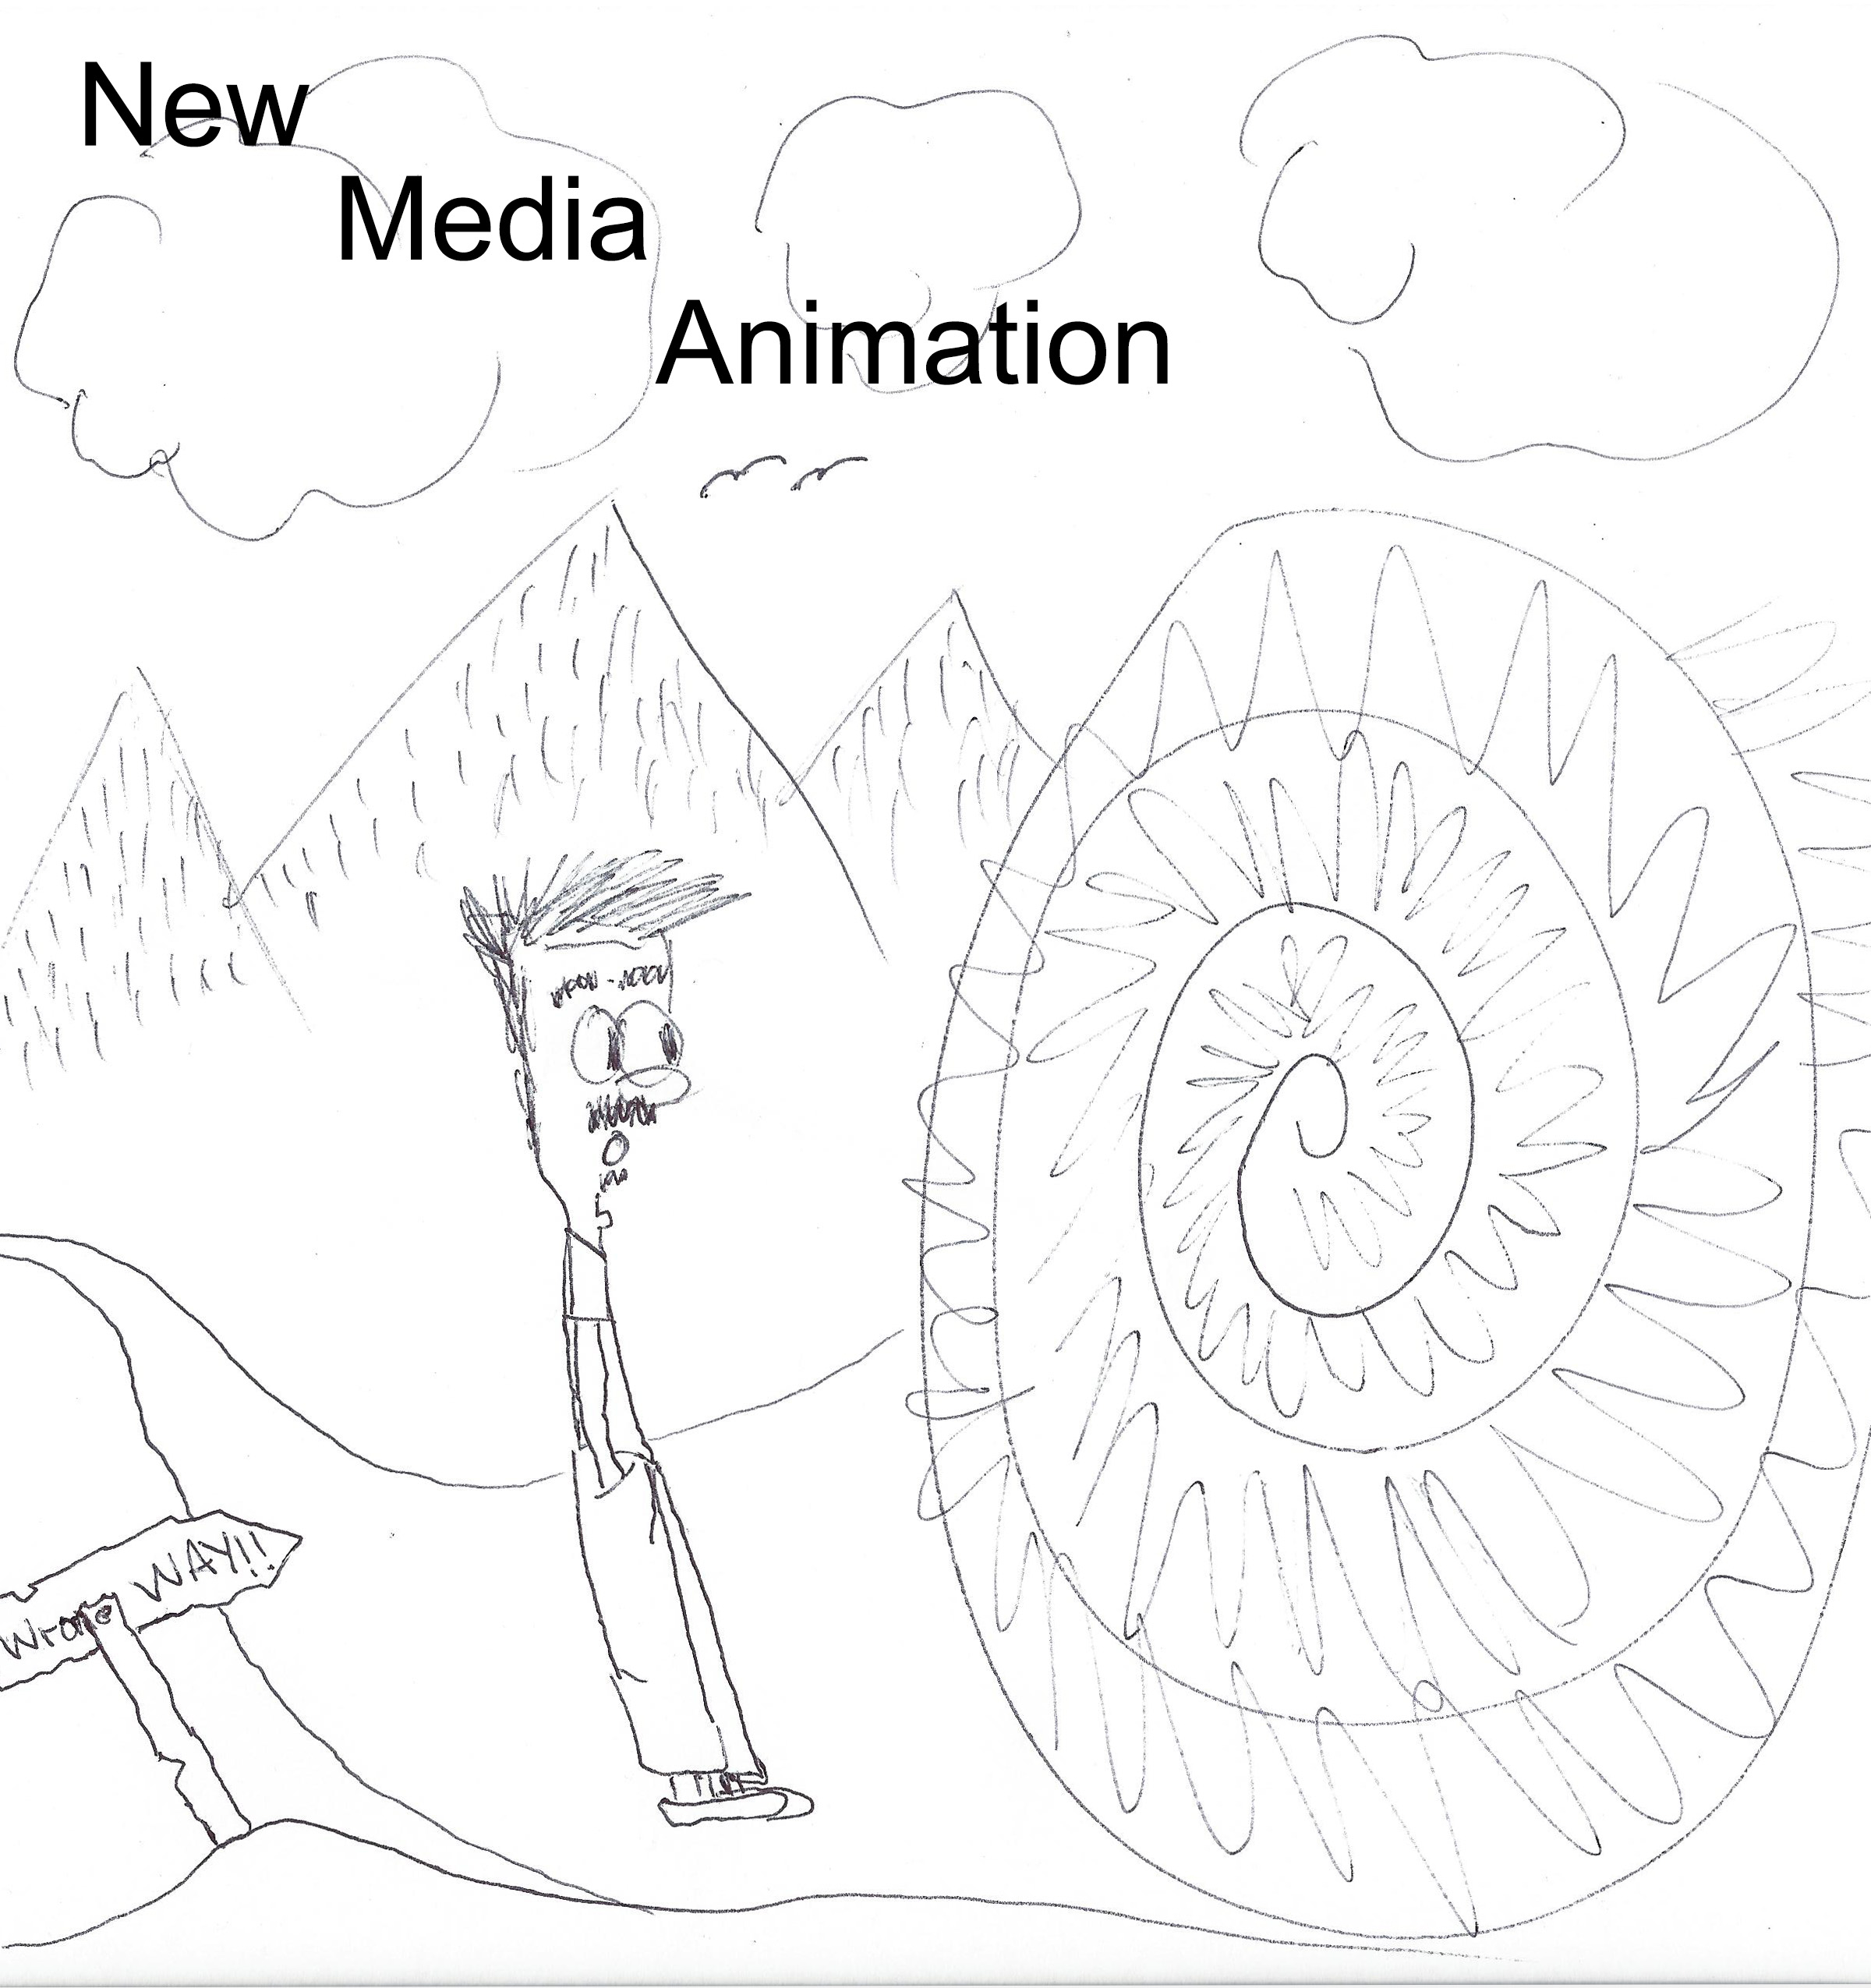 Blog 008 | New Media Animation